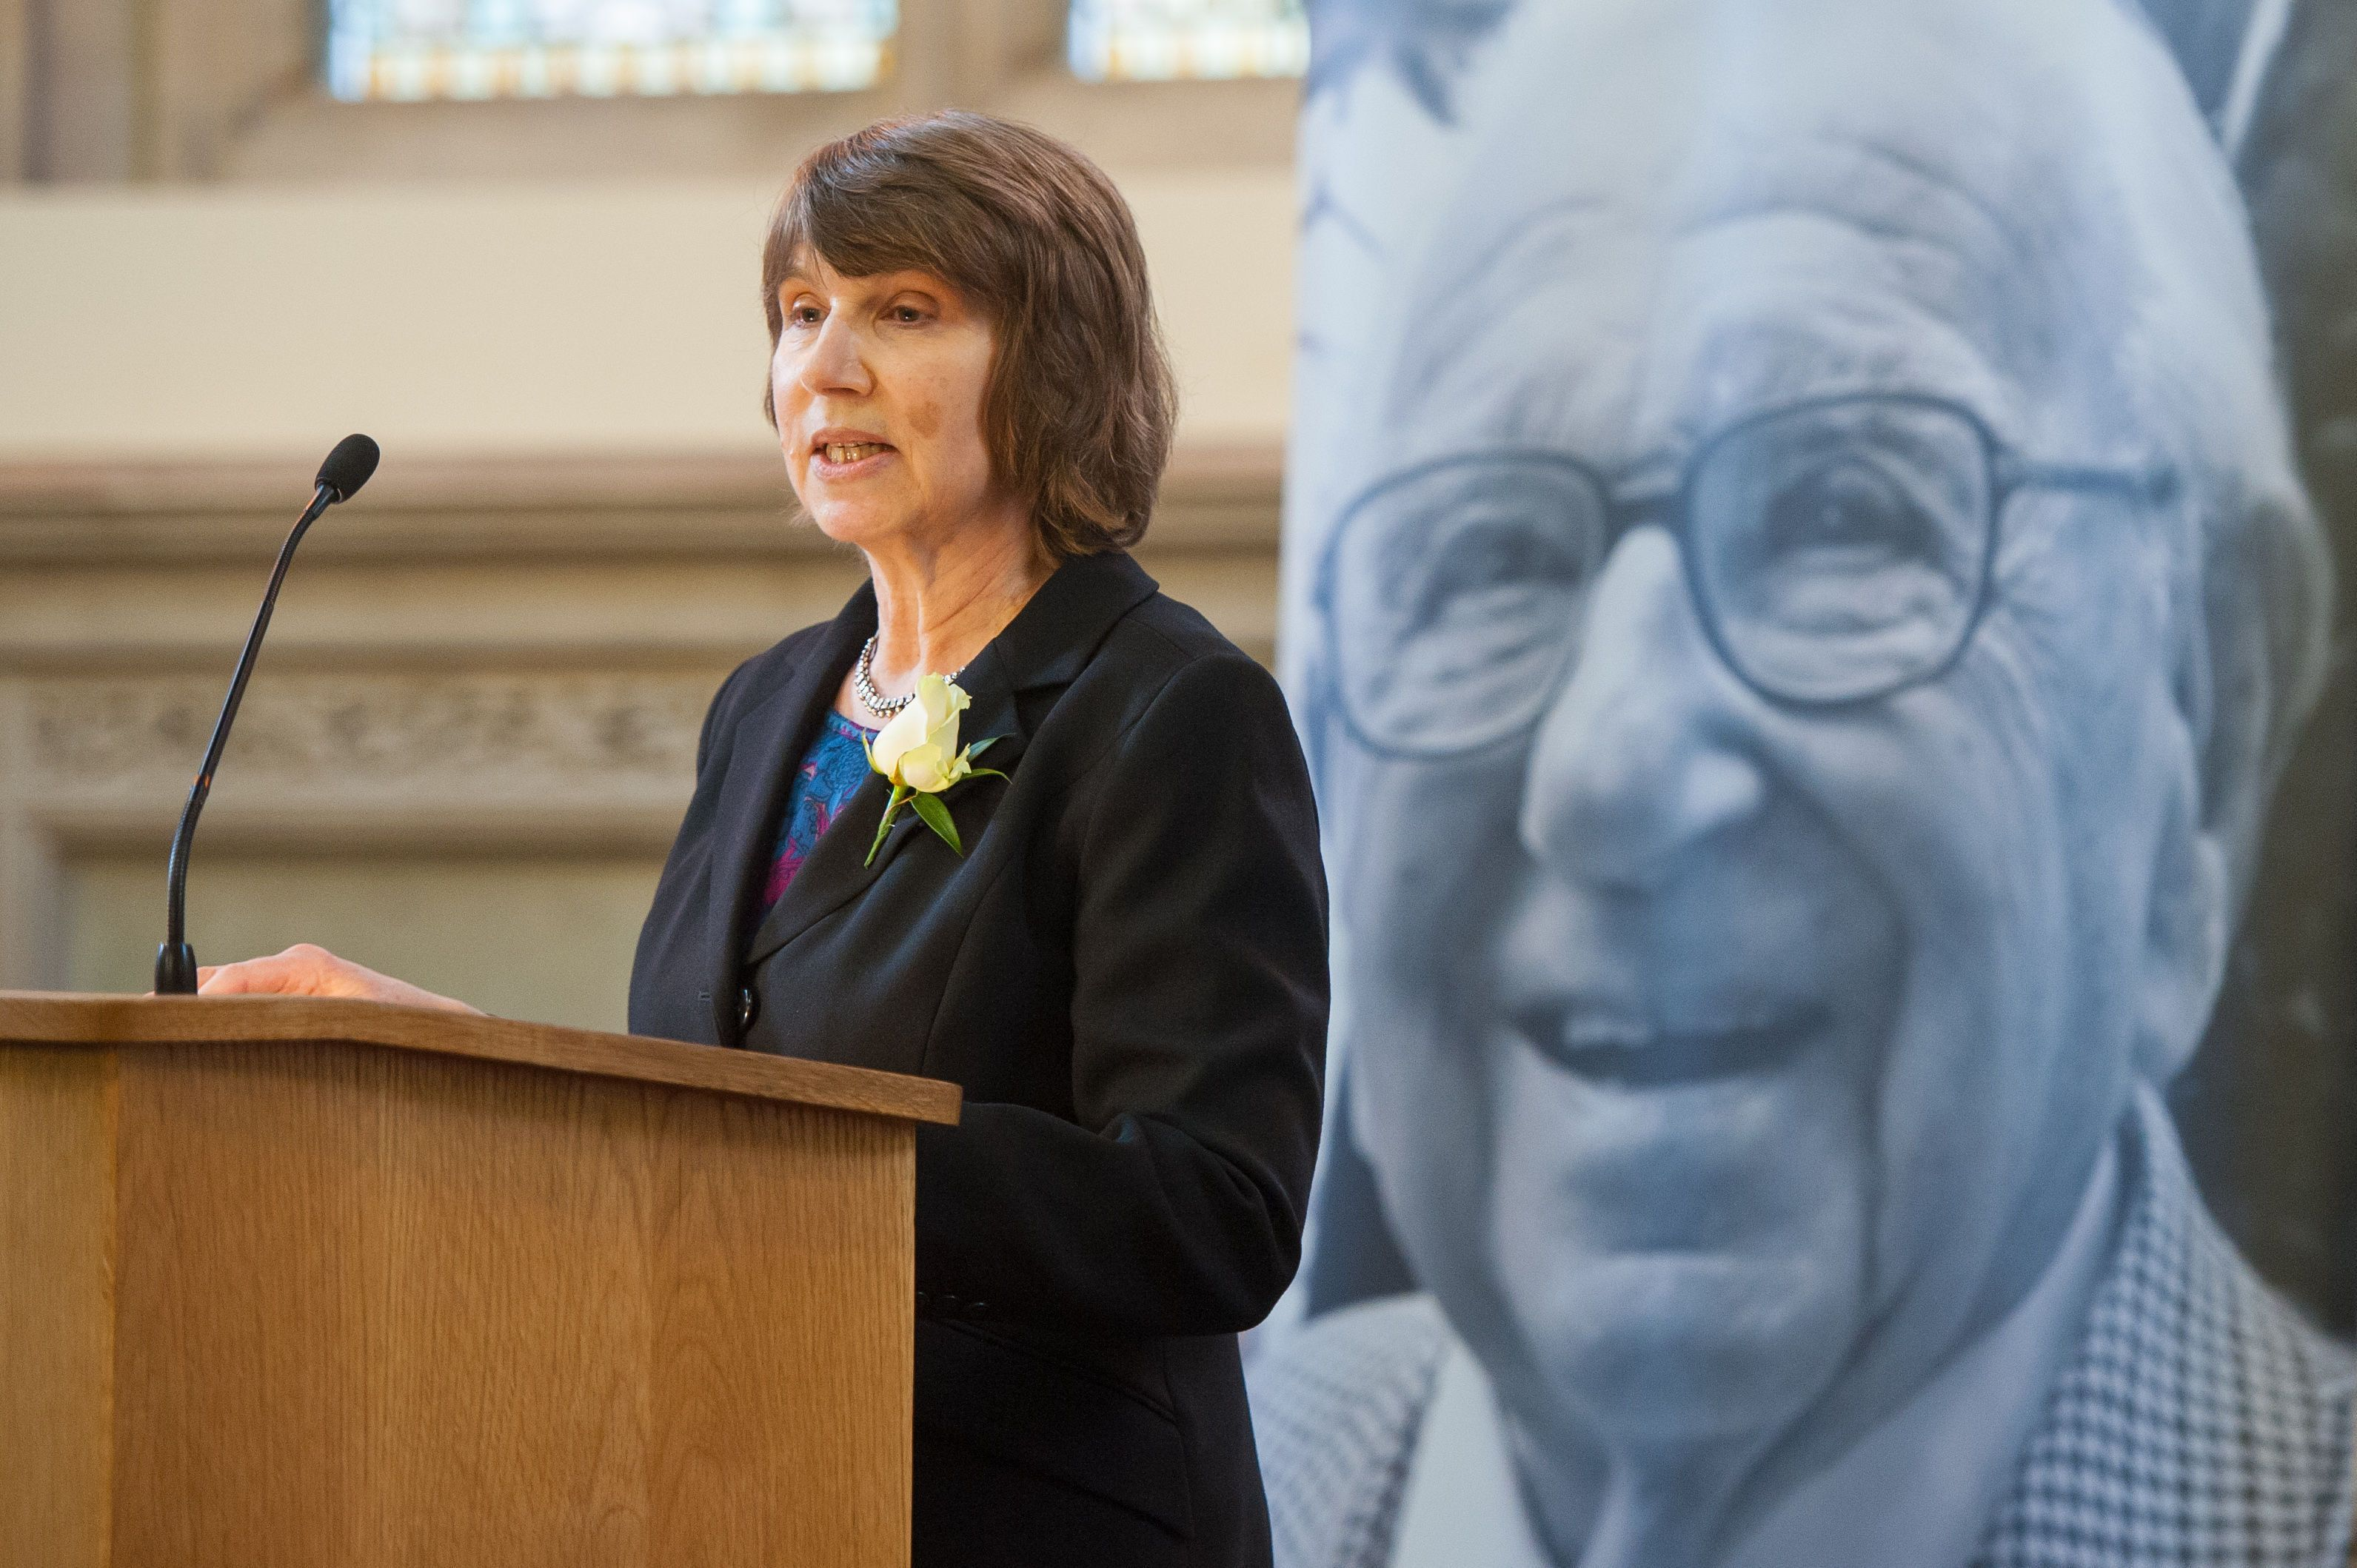 Daughter Of 'Britain's Schindler' Calls For 'Kindness And Welcome' For Young